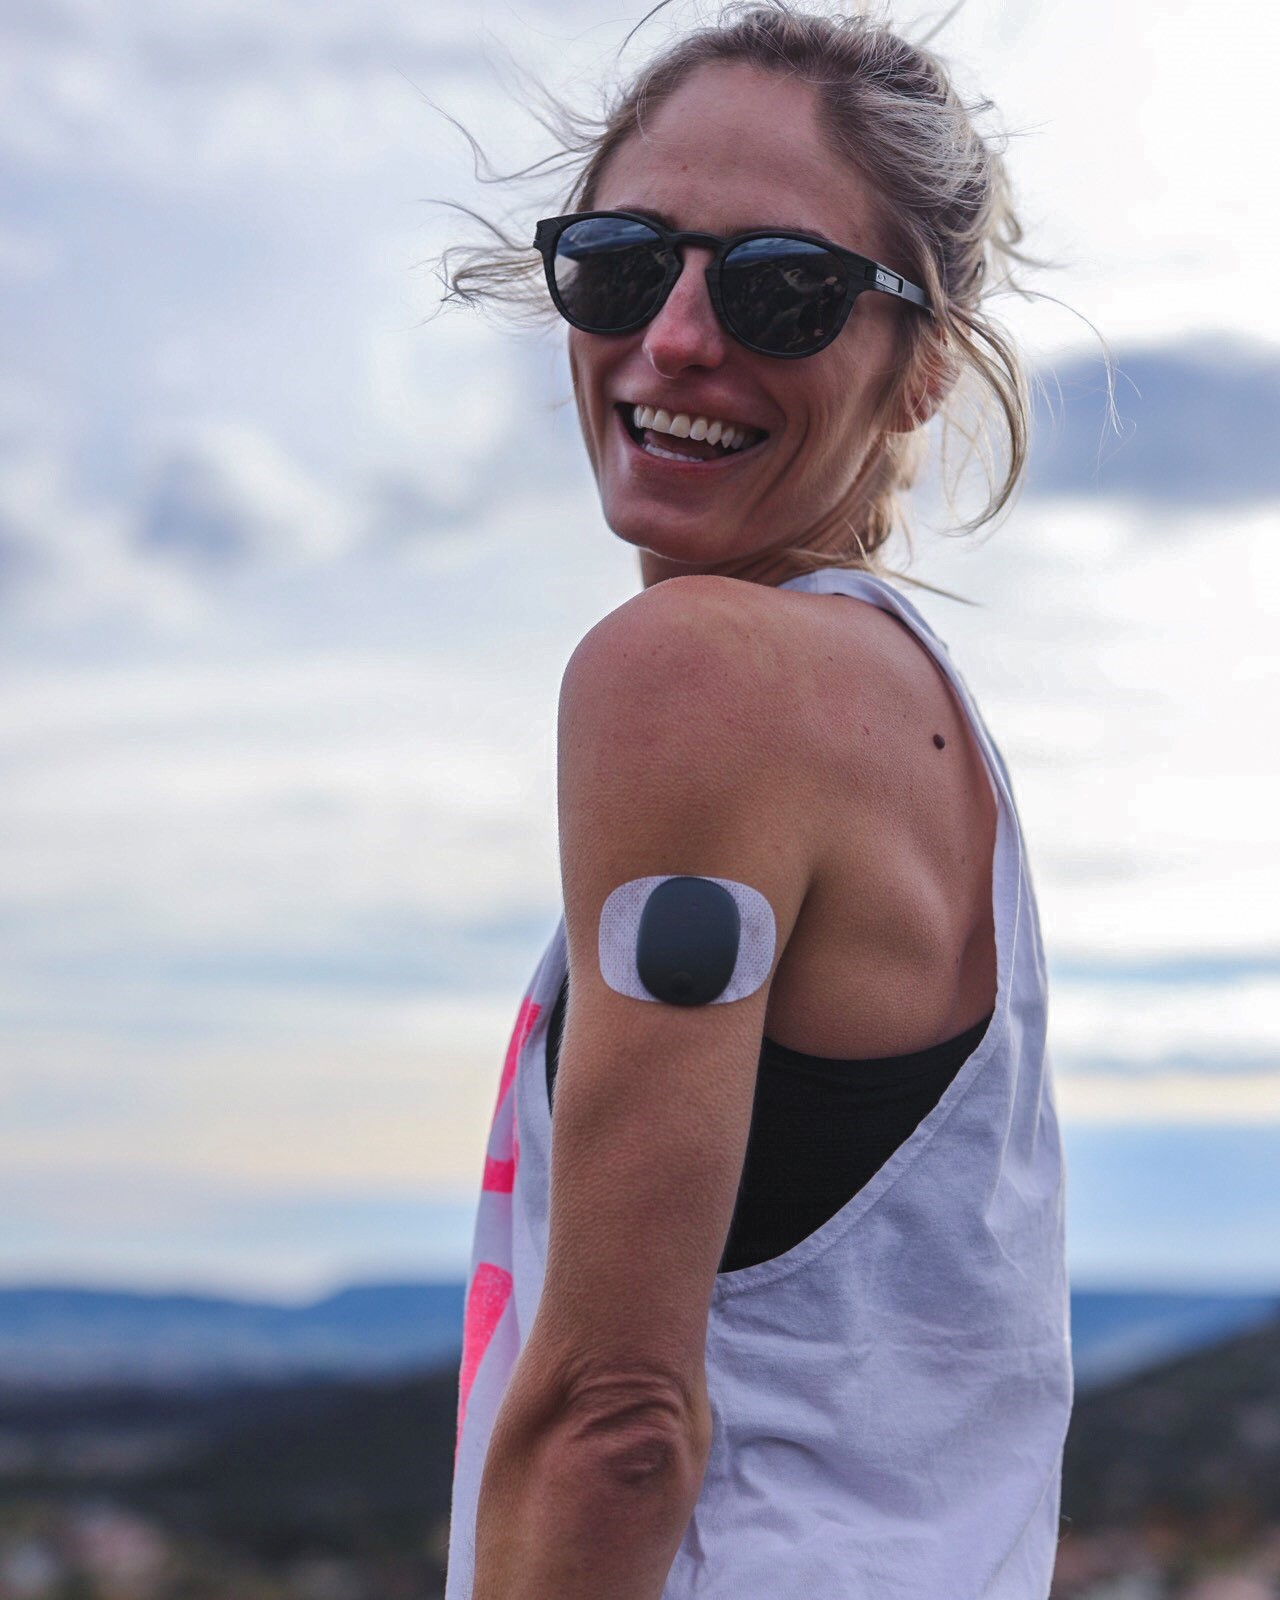 My Life-Changing Trial of the Eversense CGM